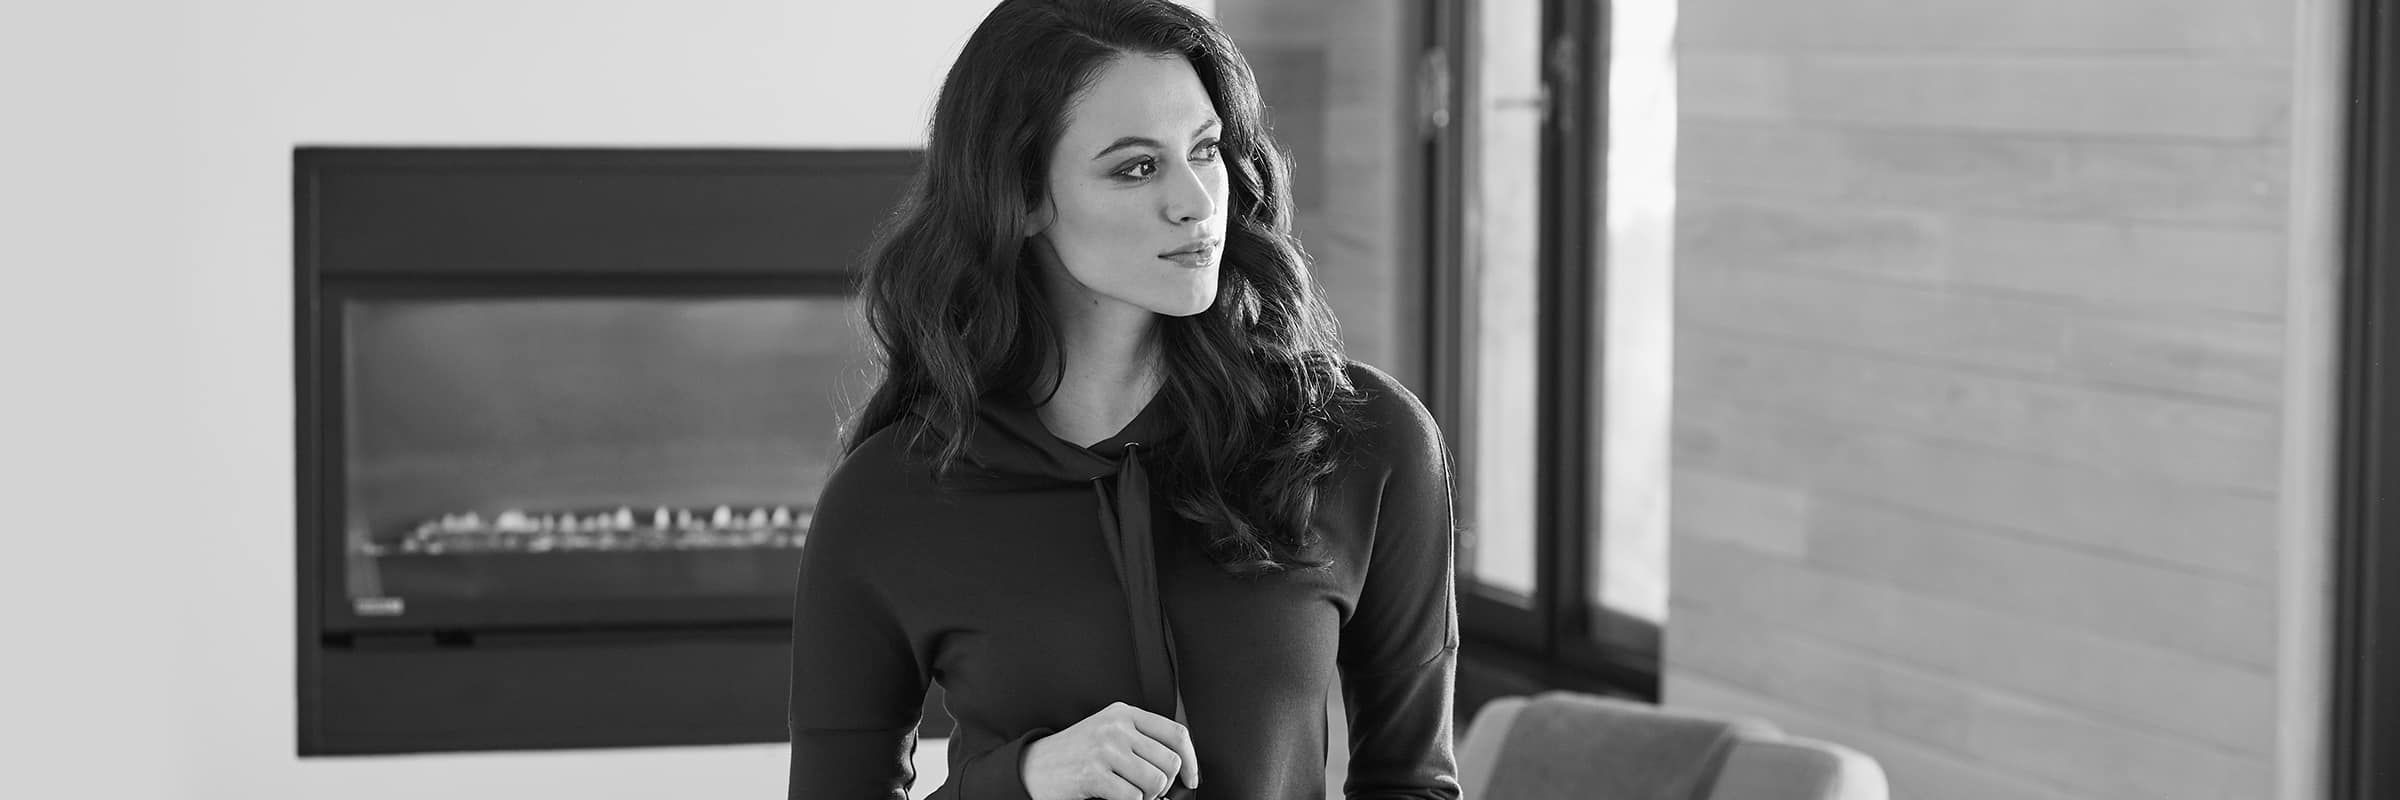 Canadian brand, environmental, FIG Clothing, made in Canada, Modal, sustainable, Travel. Sustainability, Comfort, Style—FIG Clothing's LUG & BEY Modal Sweaters